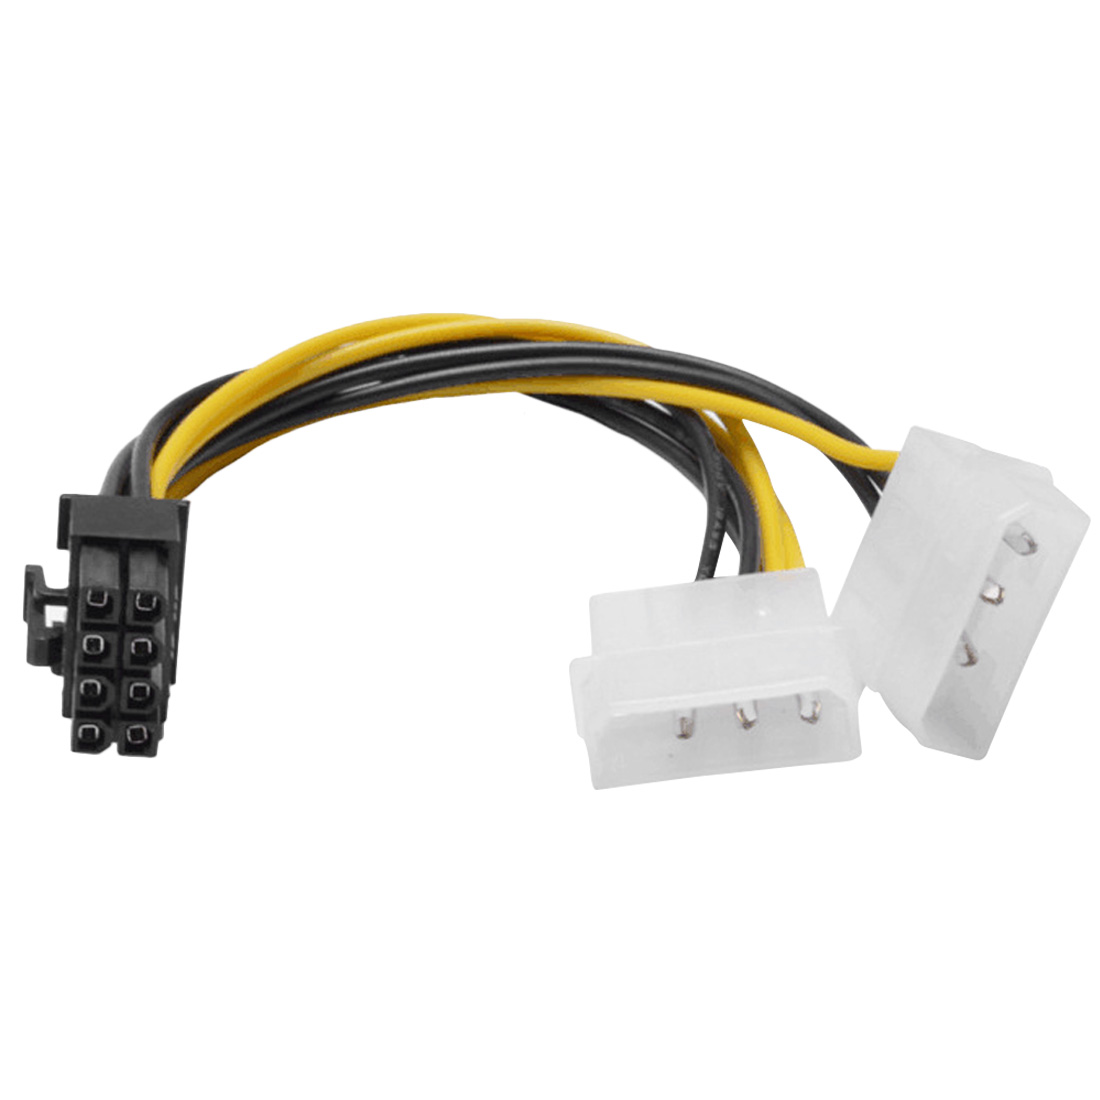 New Hot 6 Inch 2 X Molex 4 Pin To 8-Pin PCI Express Video Card Pci-e ATX PSU Power Converter Cable - Molex To Pcie 8 Pin Adapter